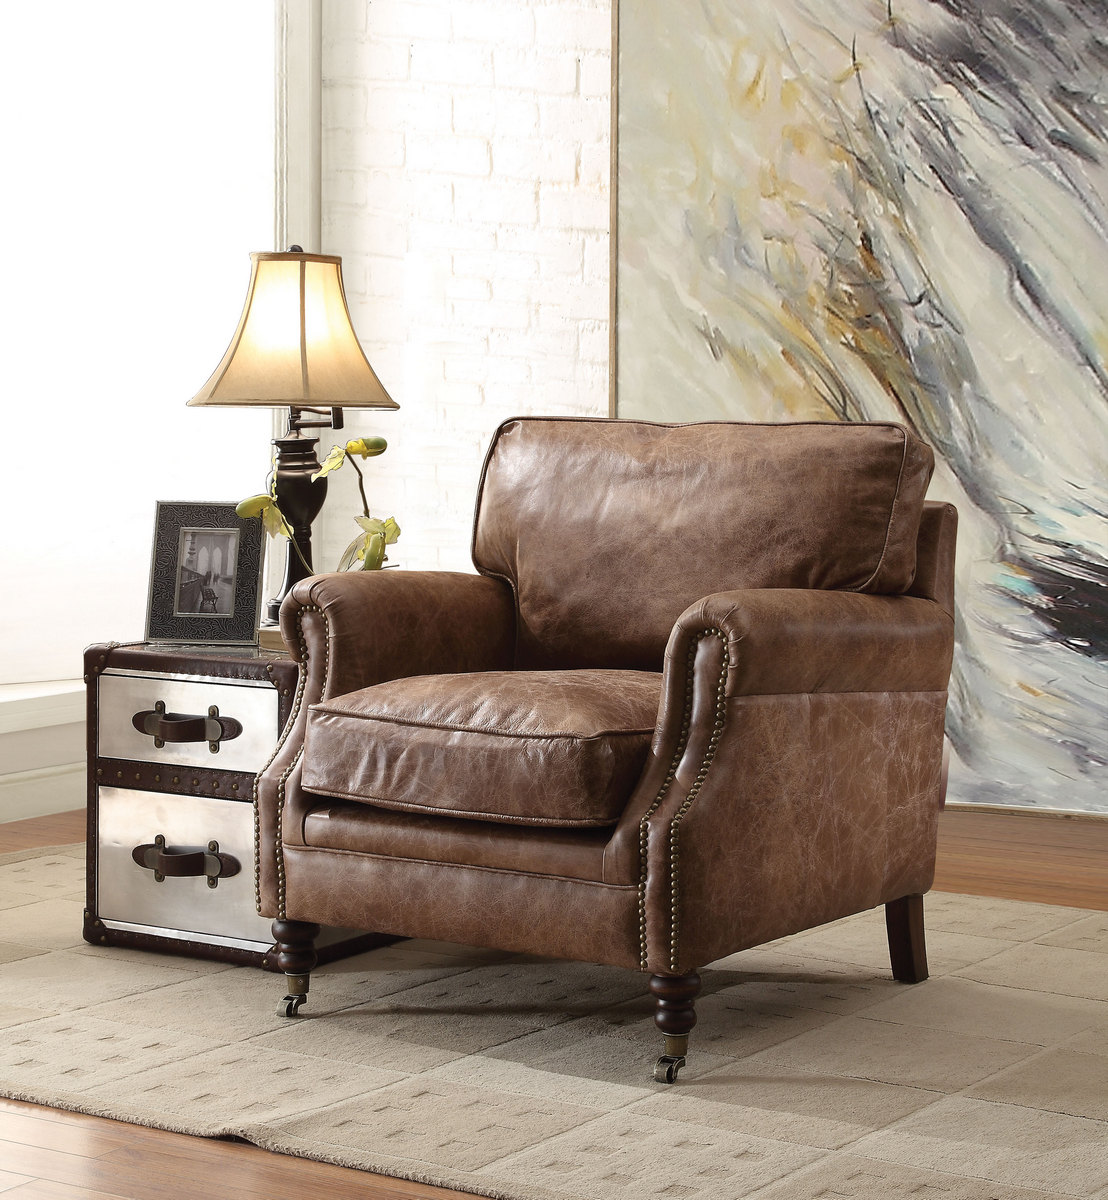 Acme Dundee Accent Chair Retro Brown Grain Leather